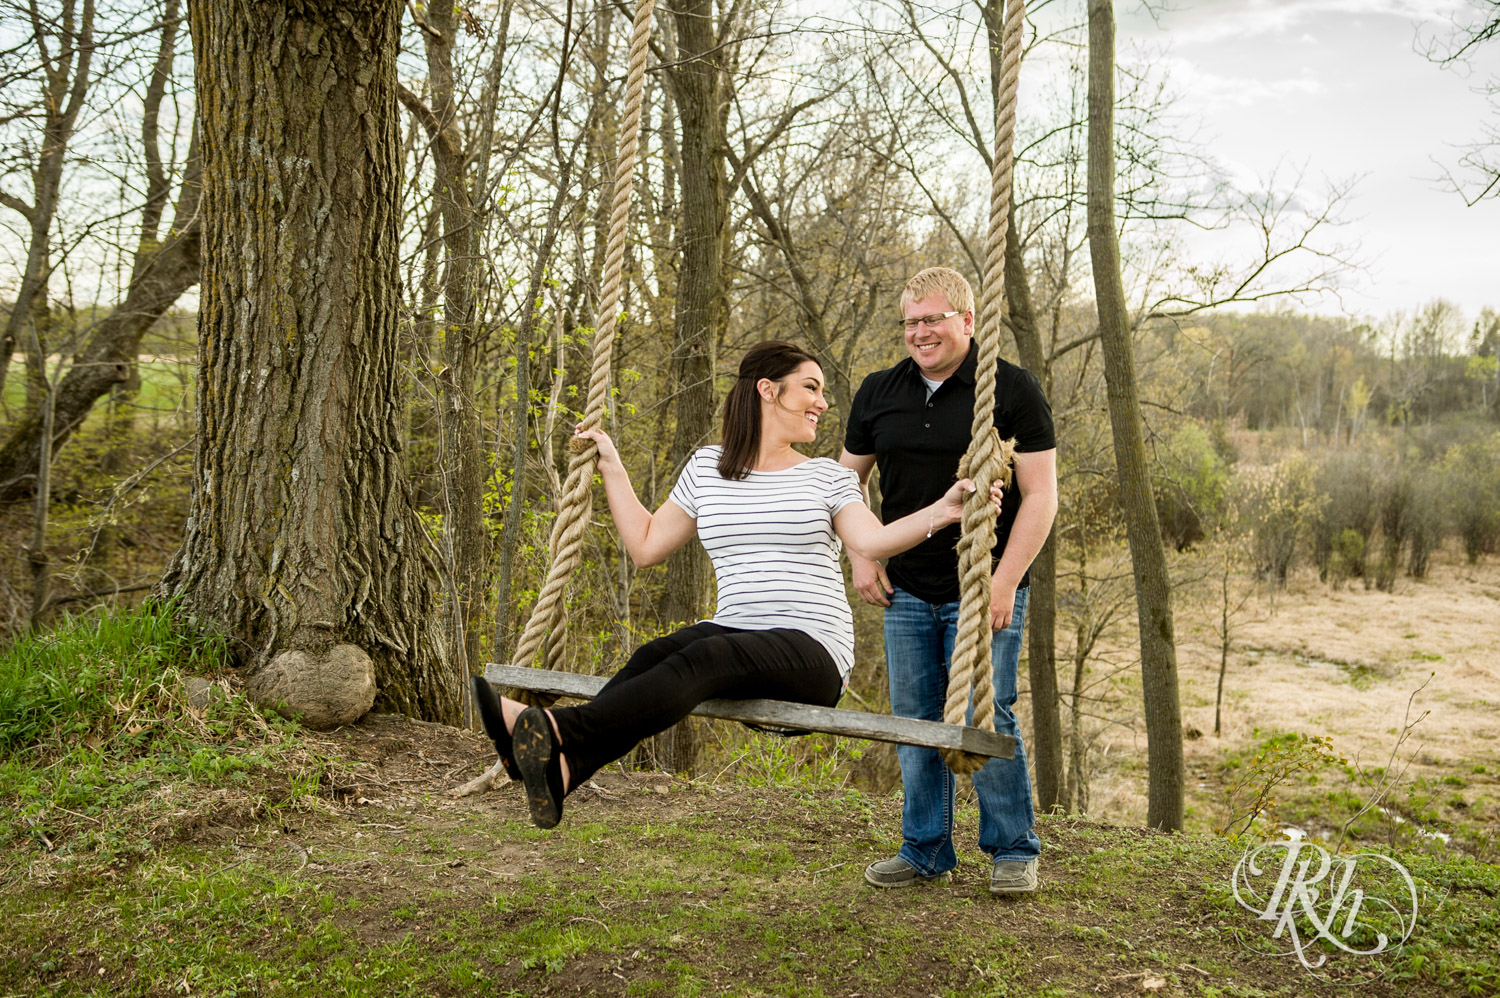 Chelsey & Erik - Minnesota Engagement Photography - Creekside Farm and Events - Rush City - RKH Images  (15 of 18).jpg